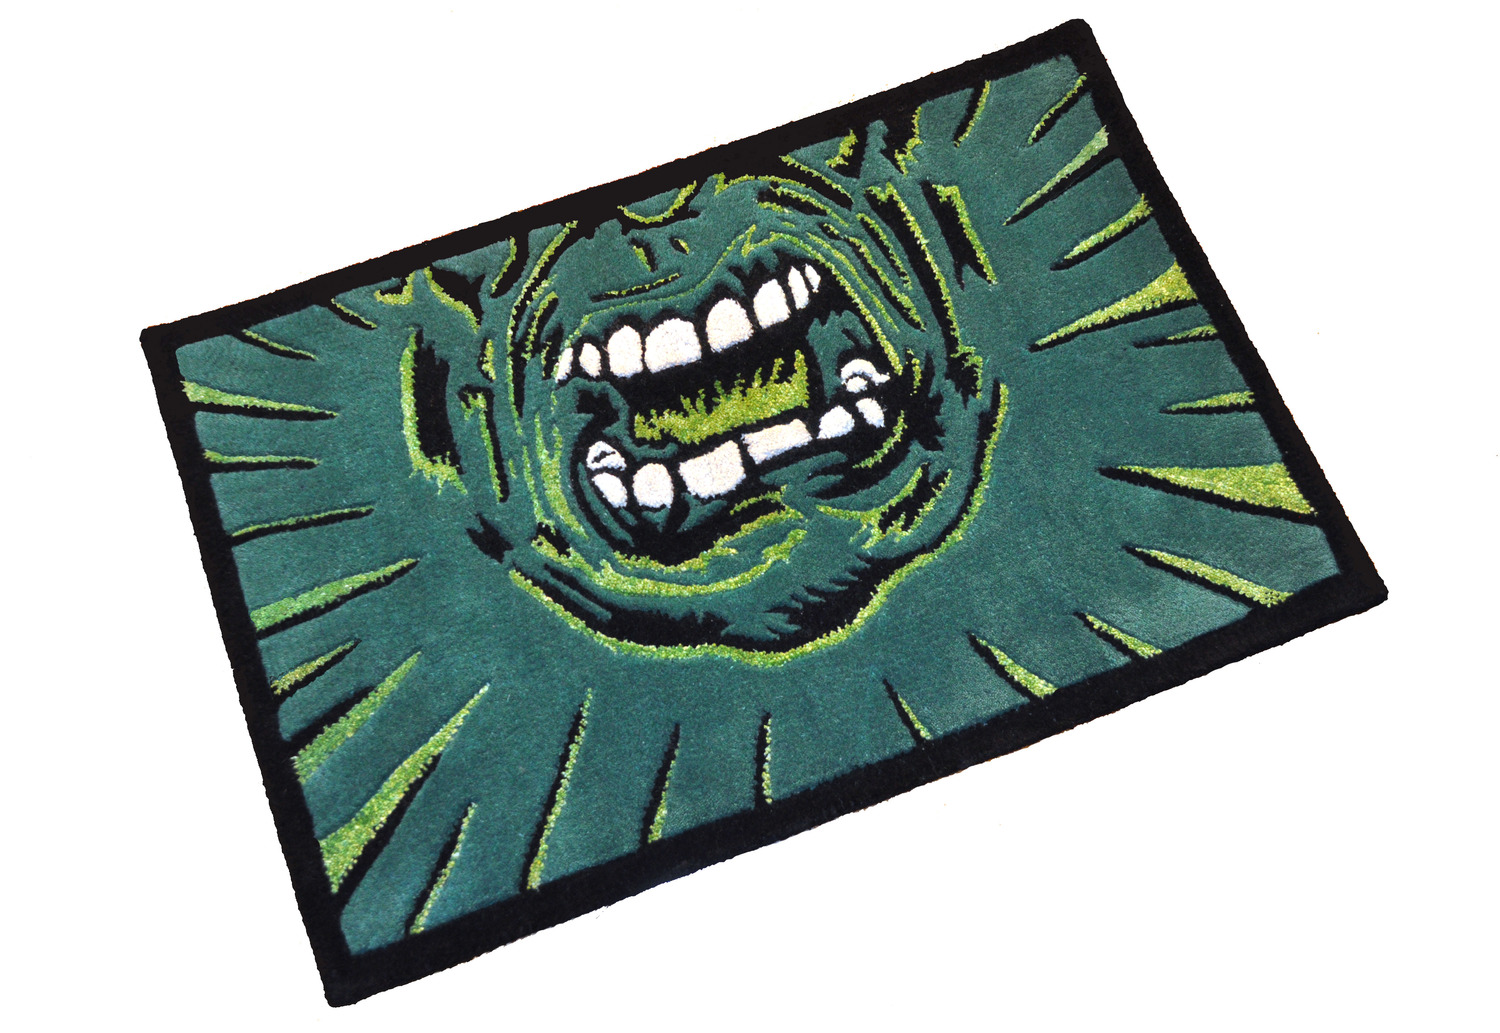 Hulk Rug  | Edition 1/1 | Hand tufted in wool and bamboo | 2'x3' | 2014